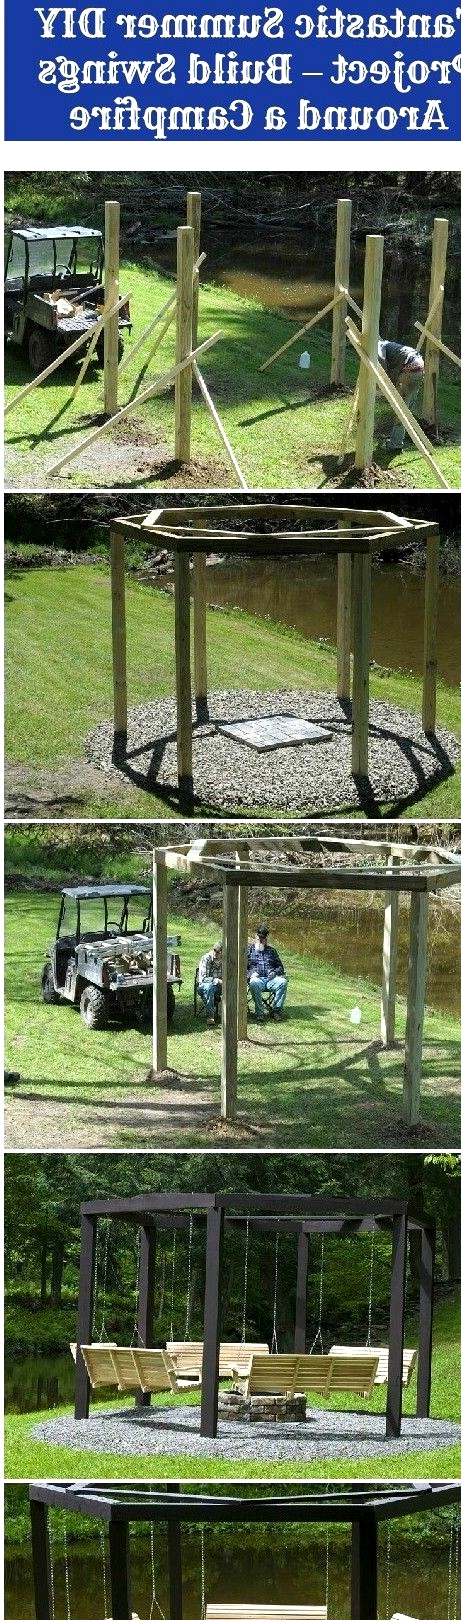 TAKE ON AN EPIC PROJECT- BUILD SWINGS AROUND A CAMPFIRE